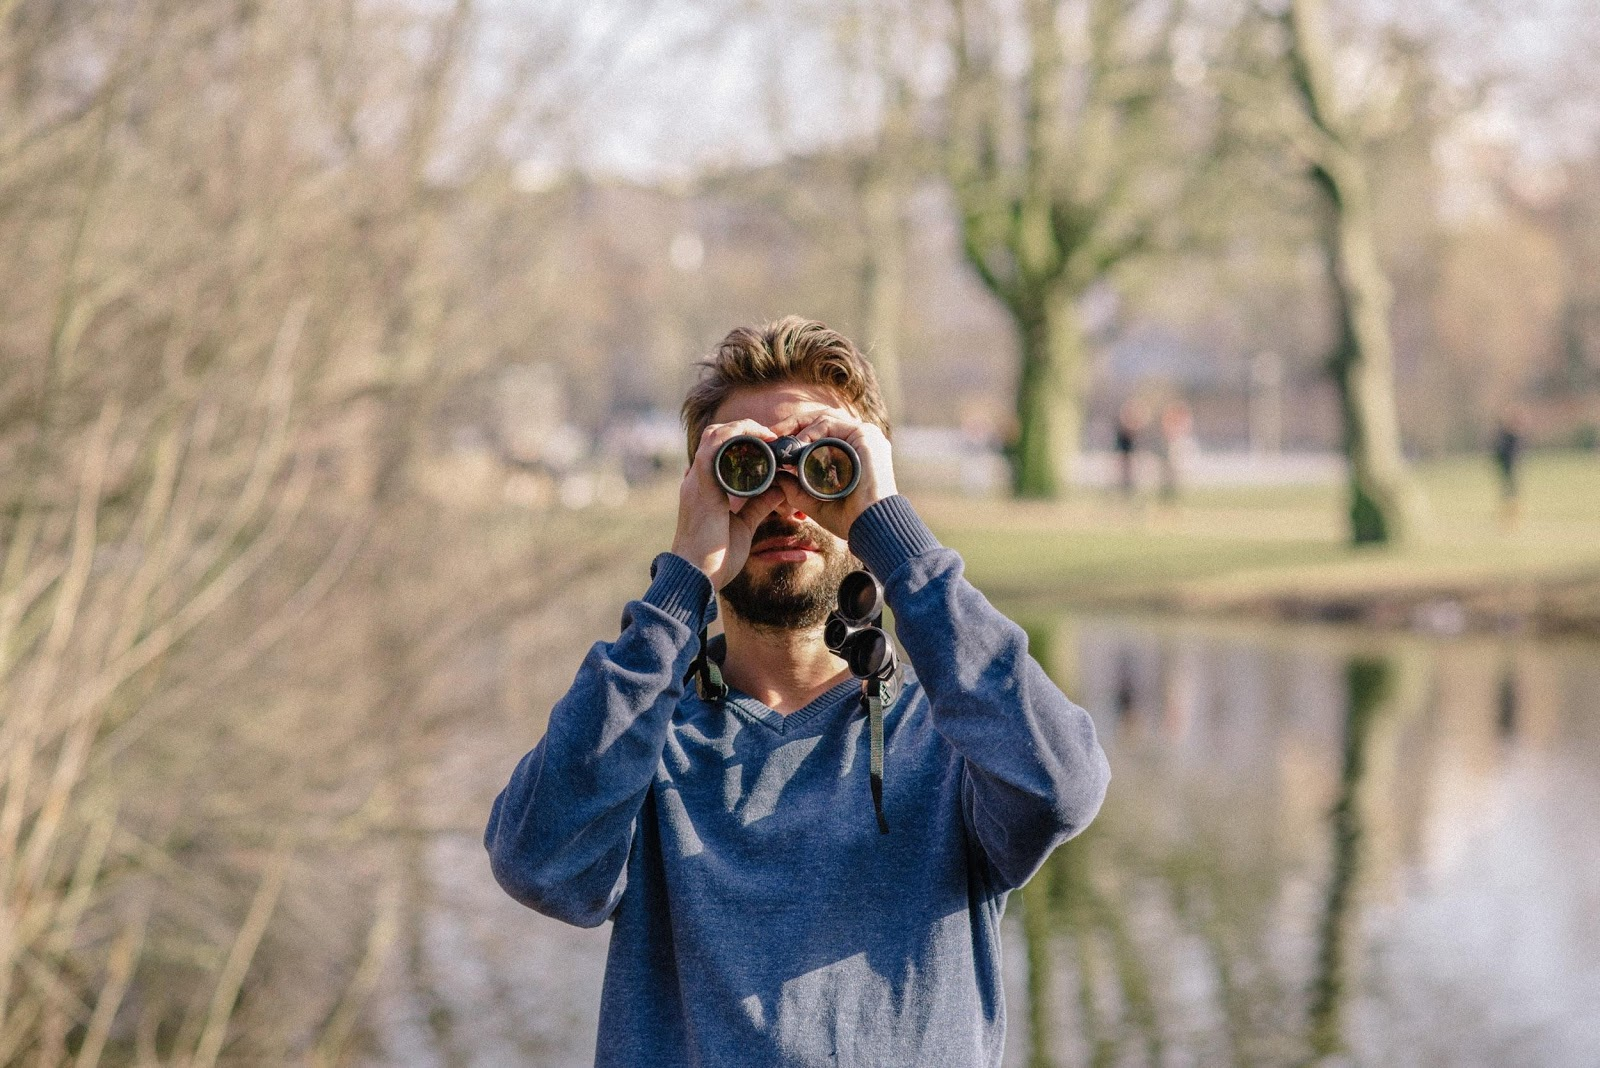 Arjan Dwarshuis looks through his binoculars